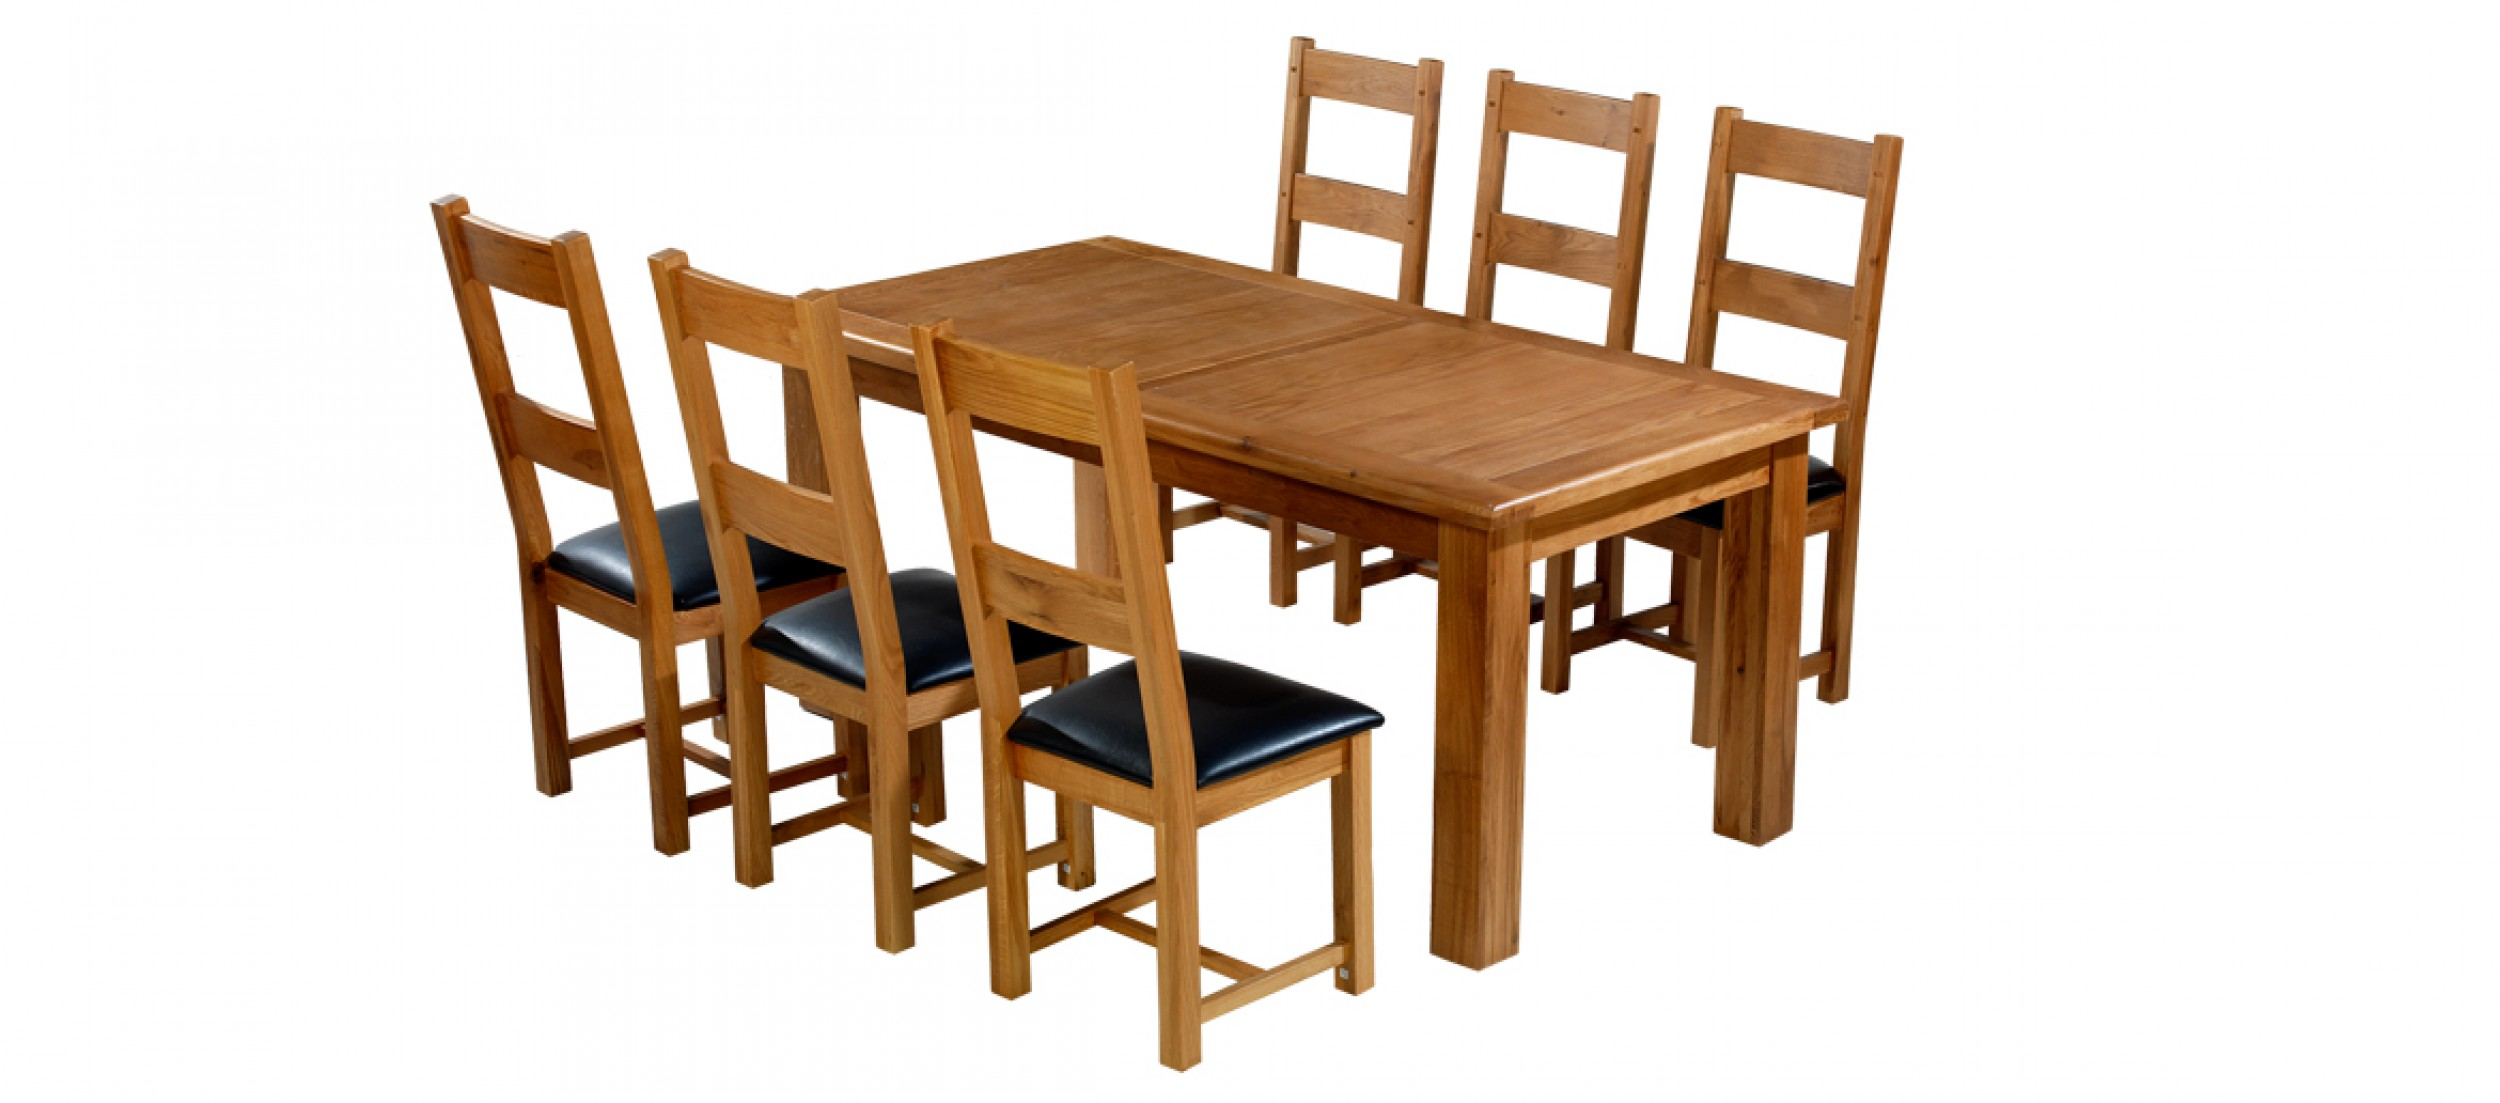 Dining Table And 6 Chairs Barham Oak 180 250 Cm Extending Dining Table And 6 Chairs